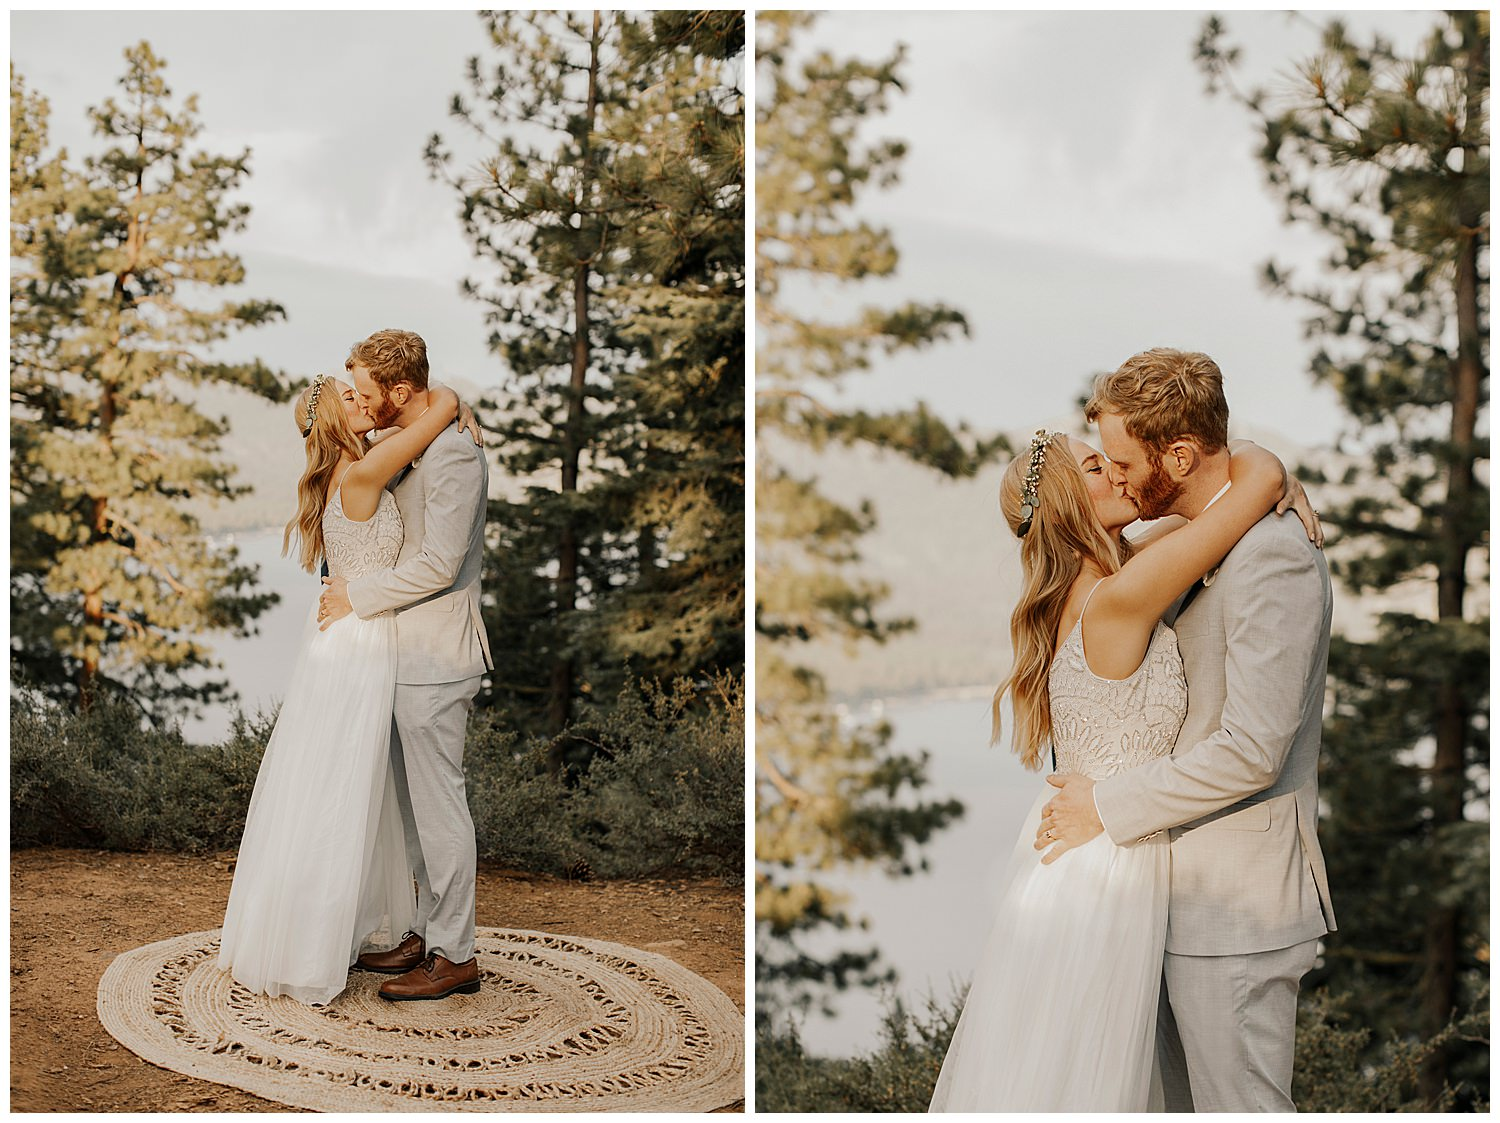 bride and groom embrace after wedding ceremony at lake tahoe